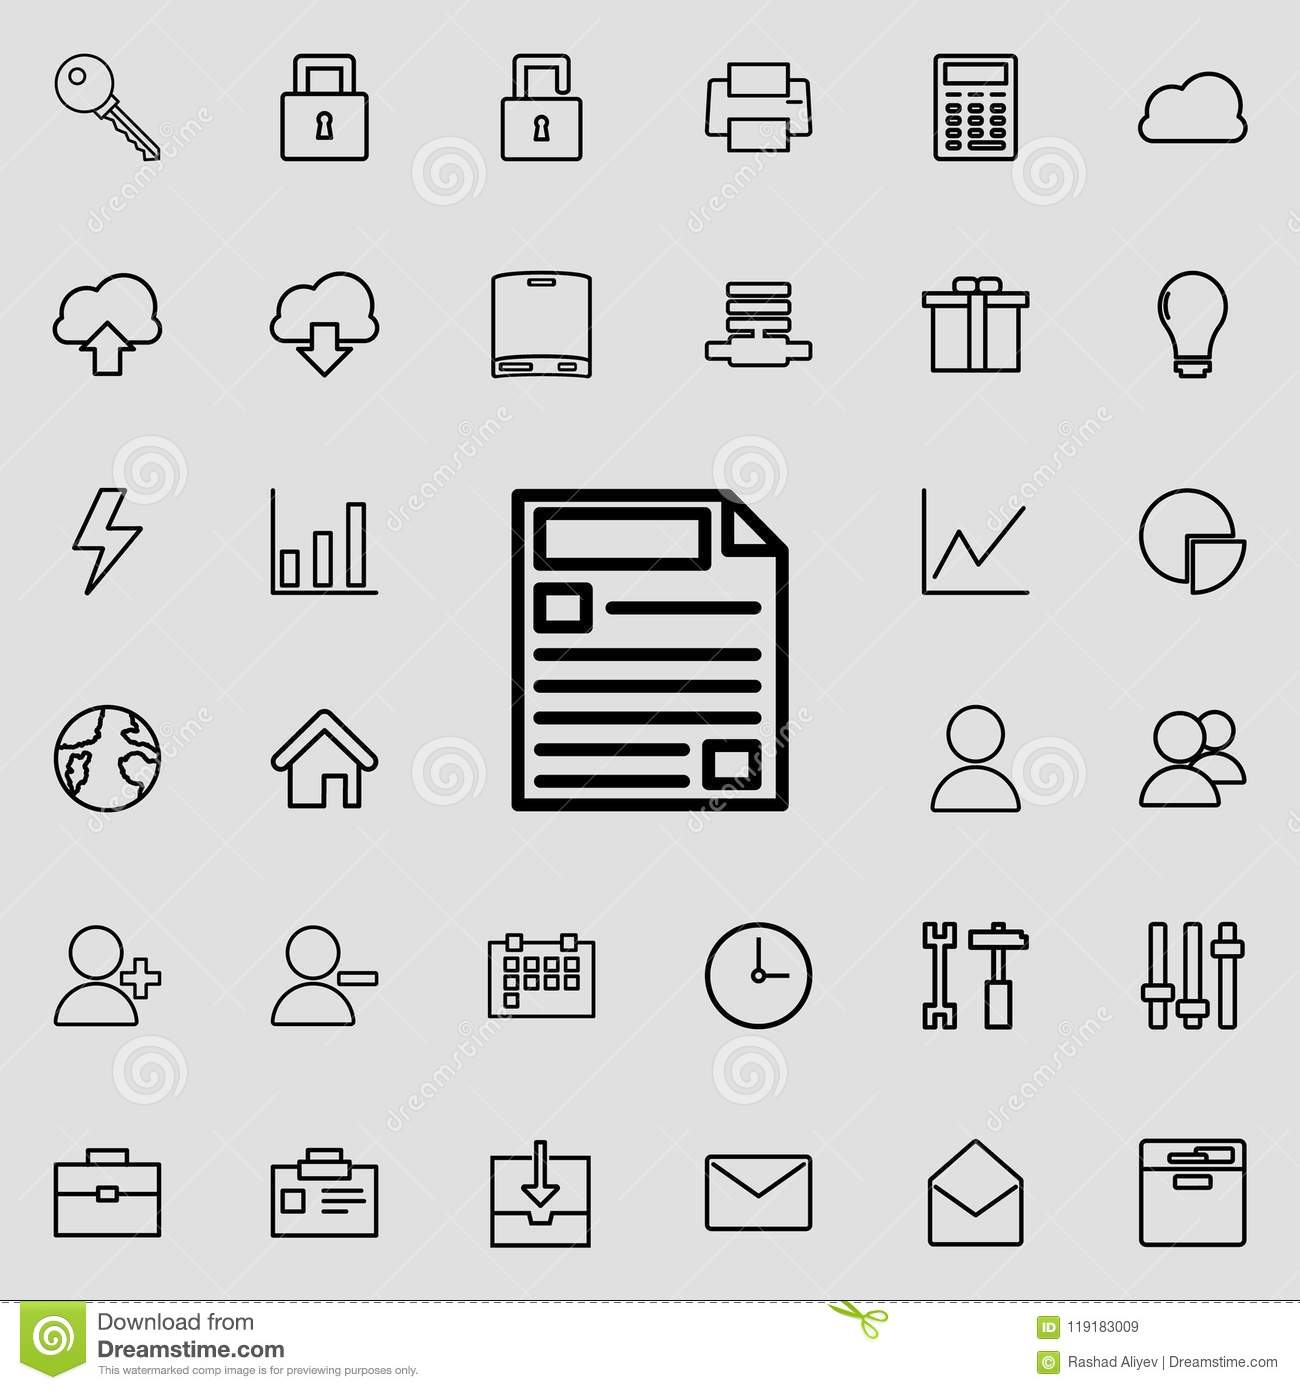 Filled-in Form Icon  Detailed Set Of Minimalistic Icons  Premium